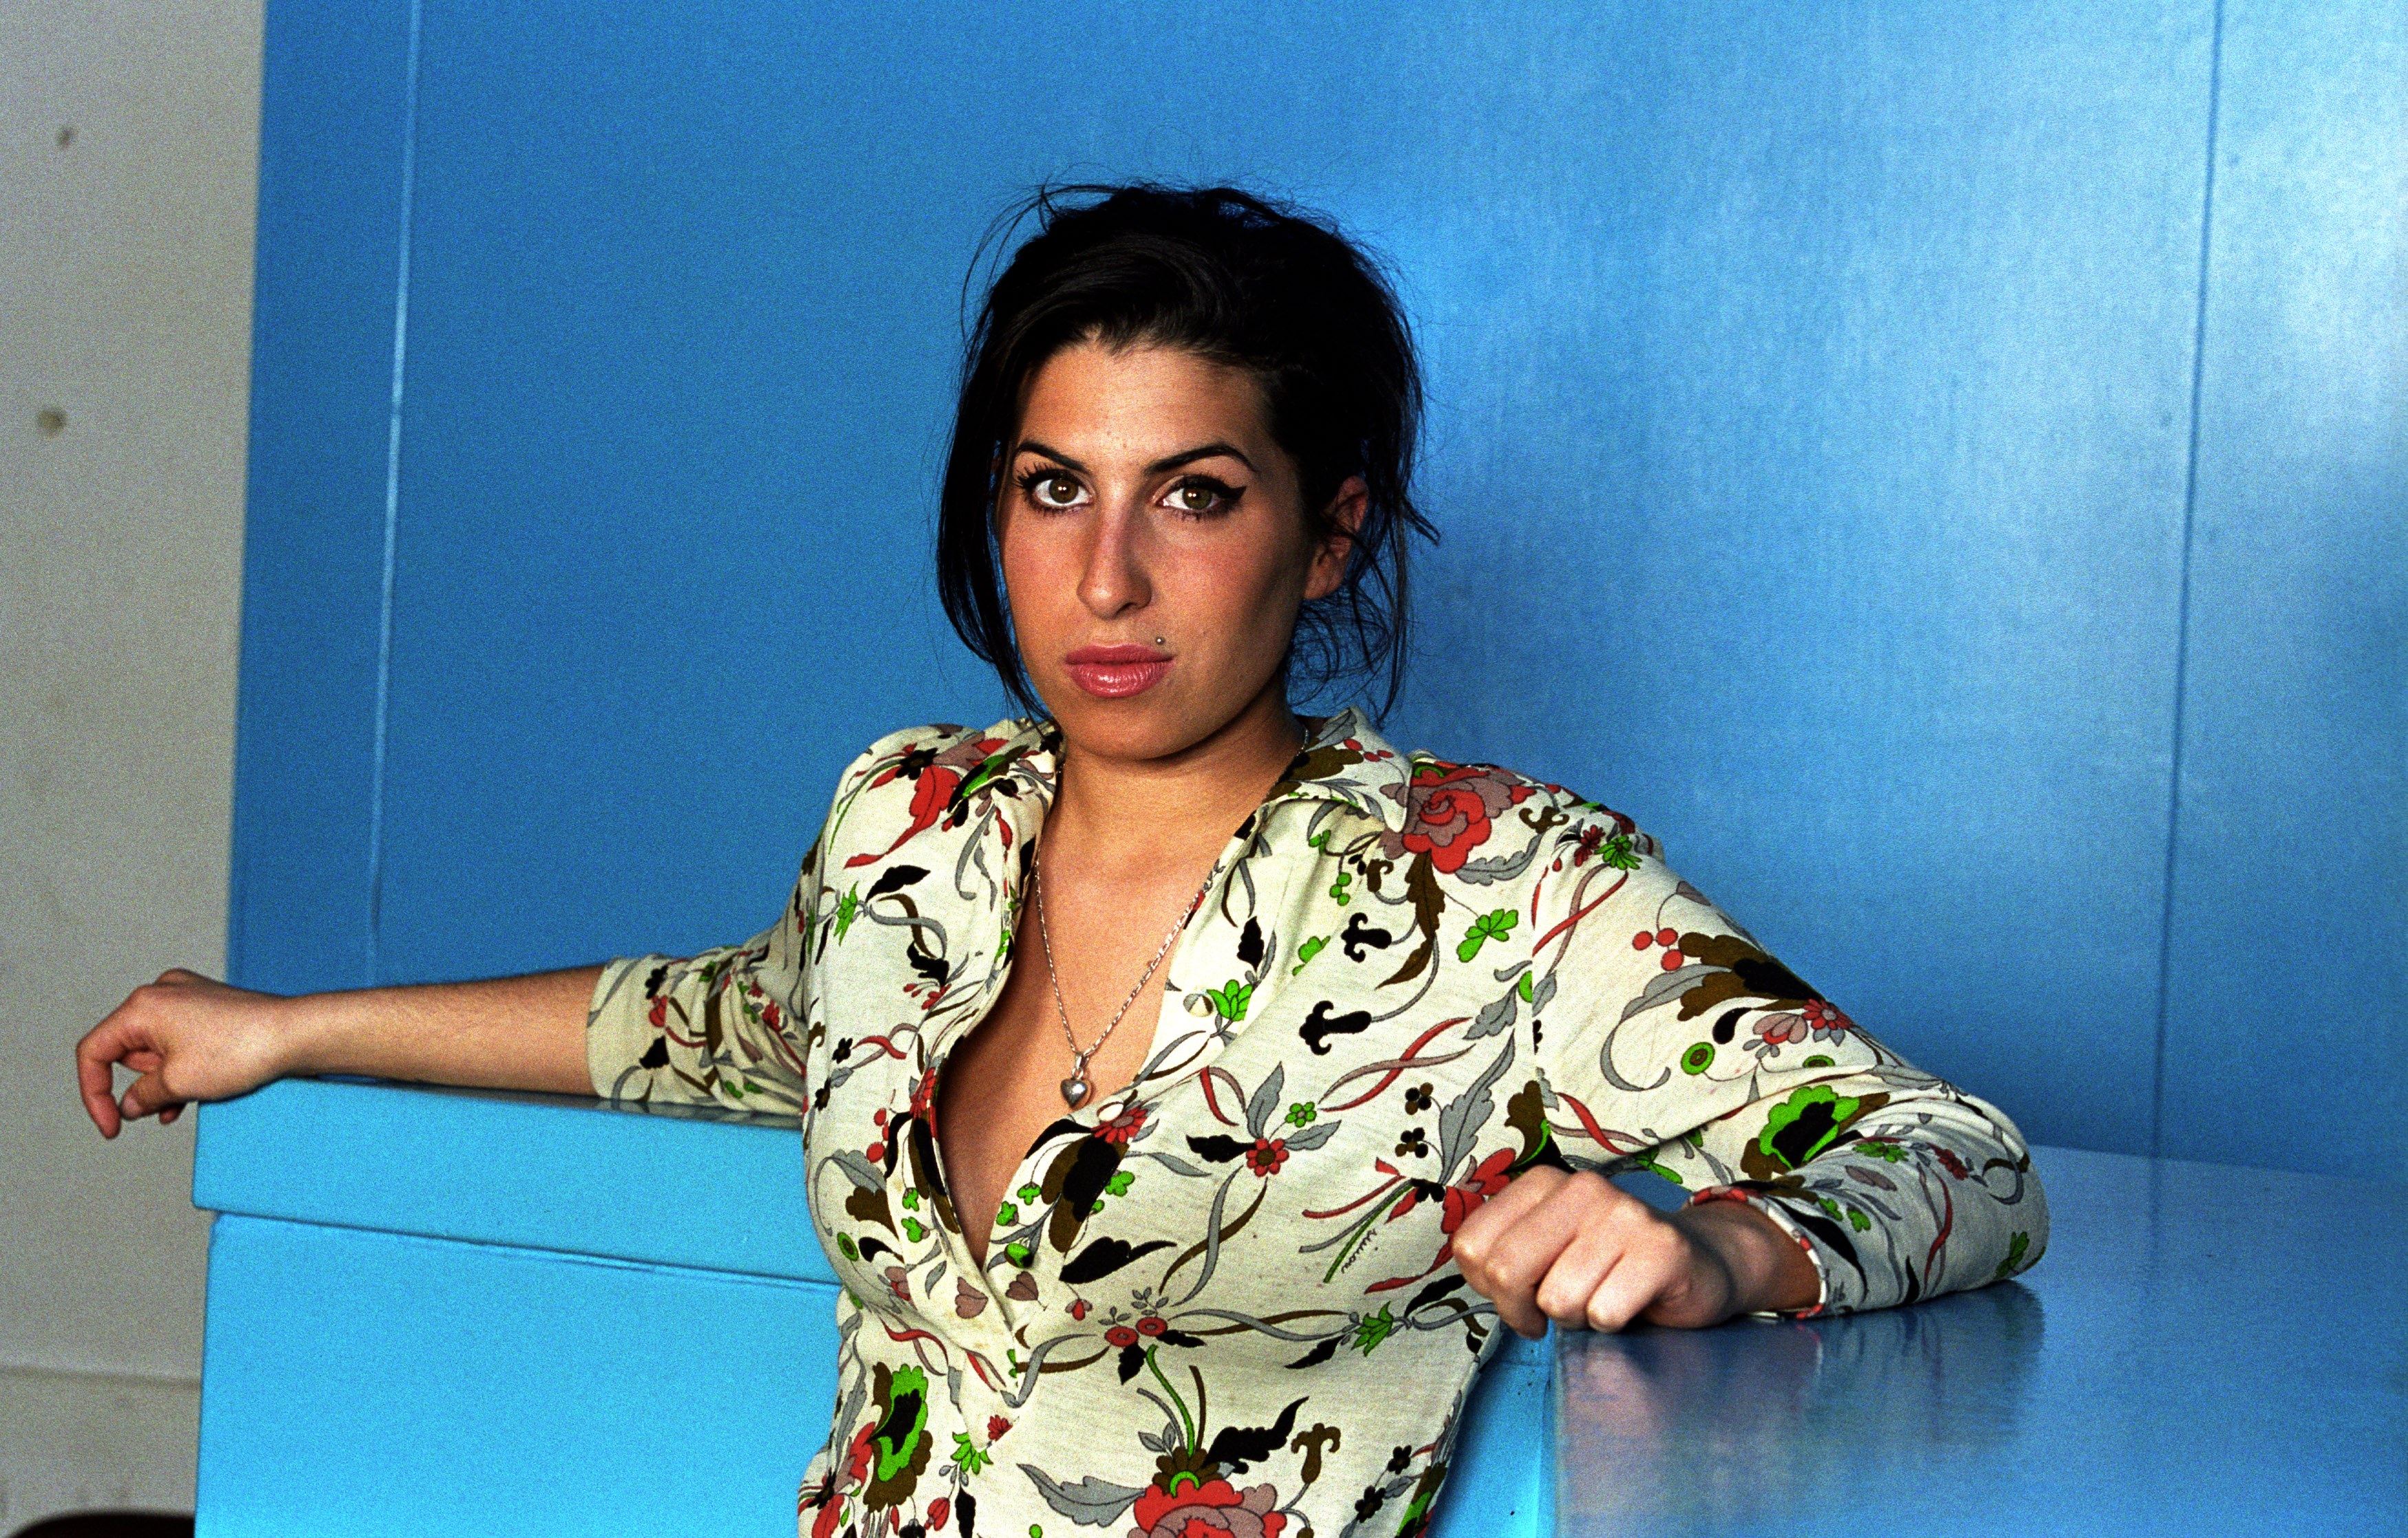 ROTTERDAM, NETHERLANDS - MARCH 11: Amy Winehouse poses for a studio portrait in Rotterdam, Netherlands, 11th March 2004. (Pho